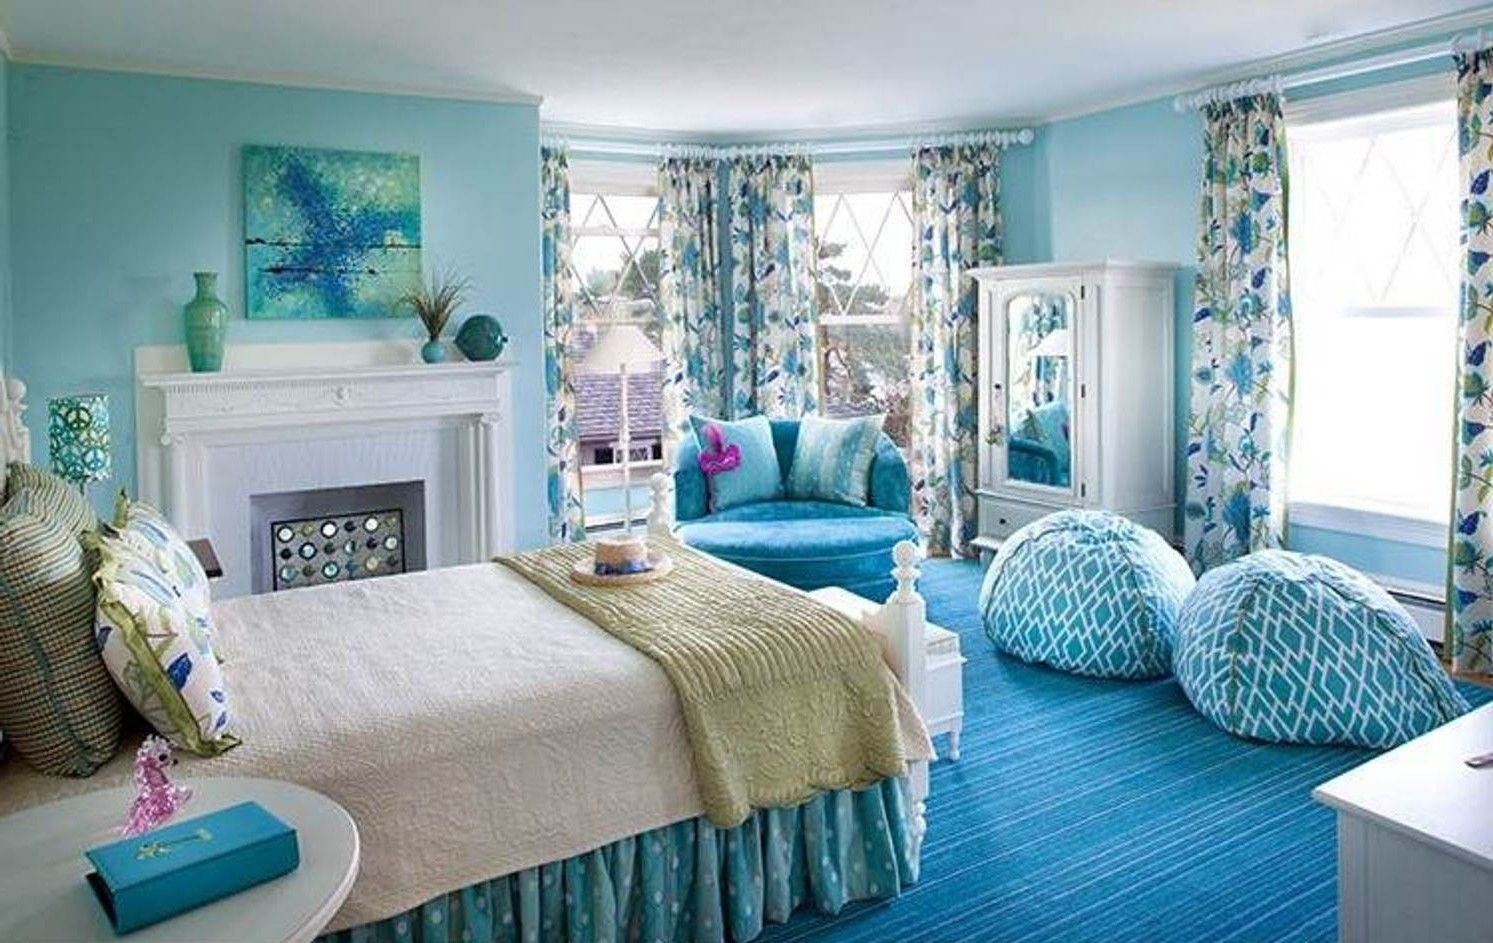 Bedroom Ideas For Teenage Girls With Medium Sized Rooms Google Search Girls Dream Bedroom Dream Rooms Remodel Bedroom